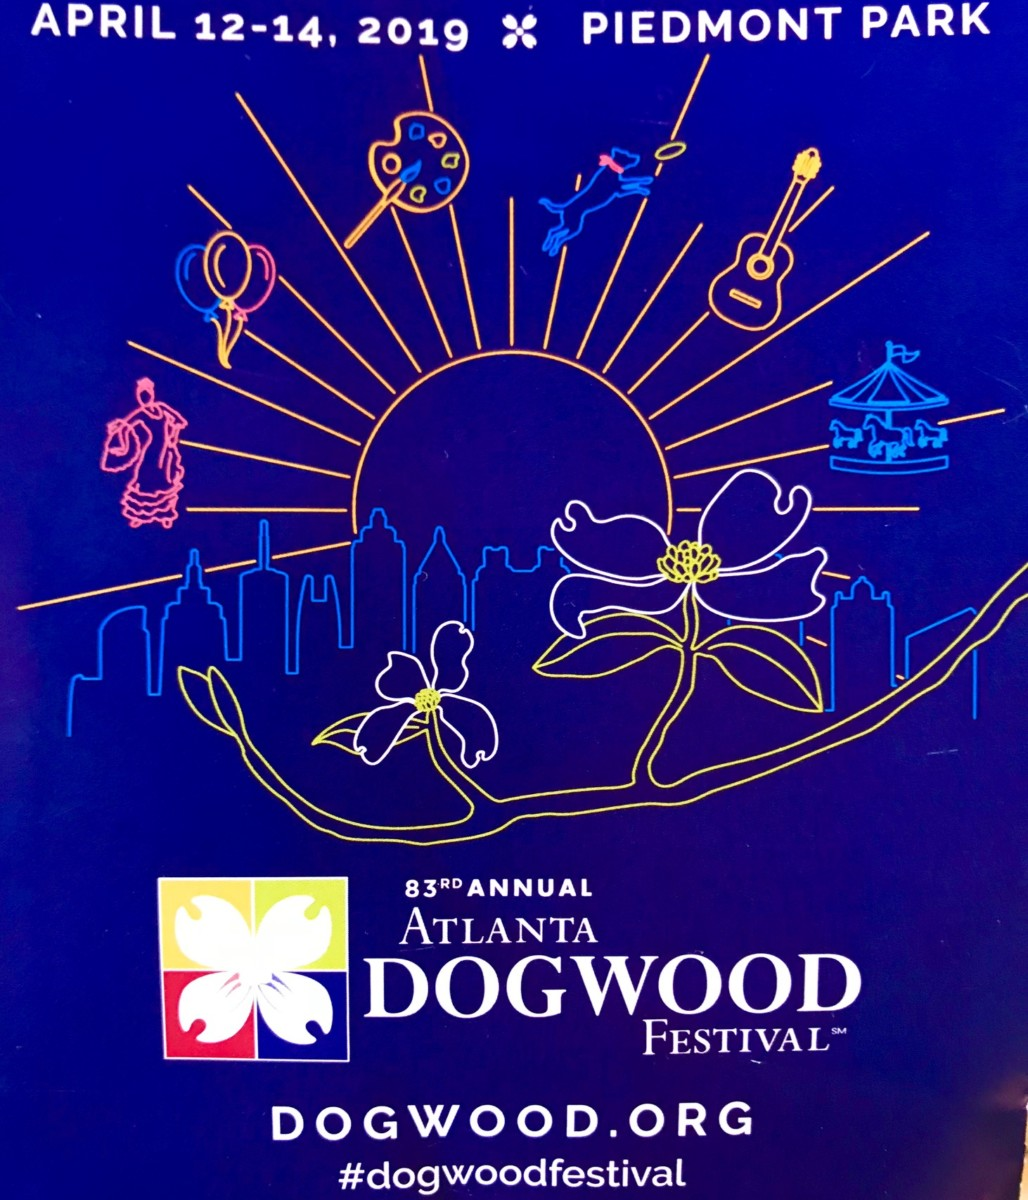 Dogwood Fest 2019 by Kelly Jordan